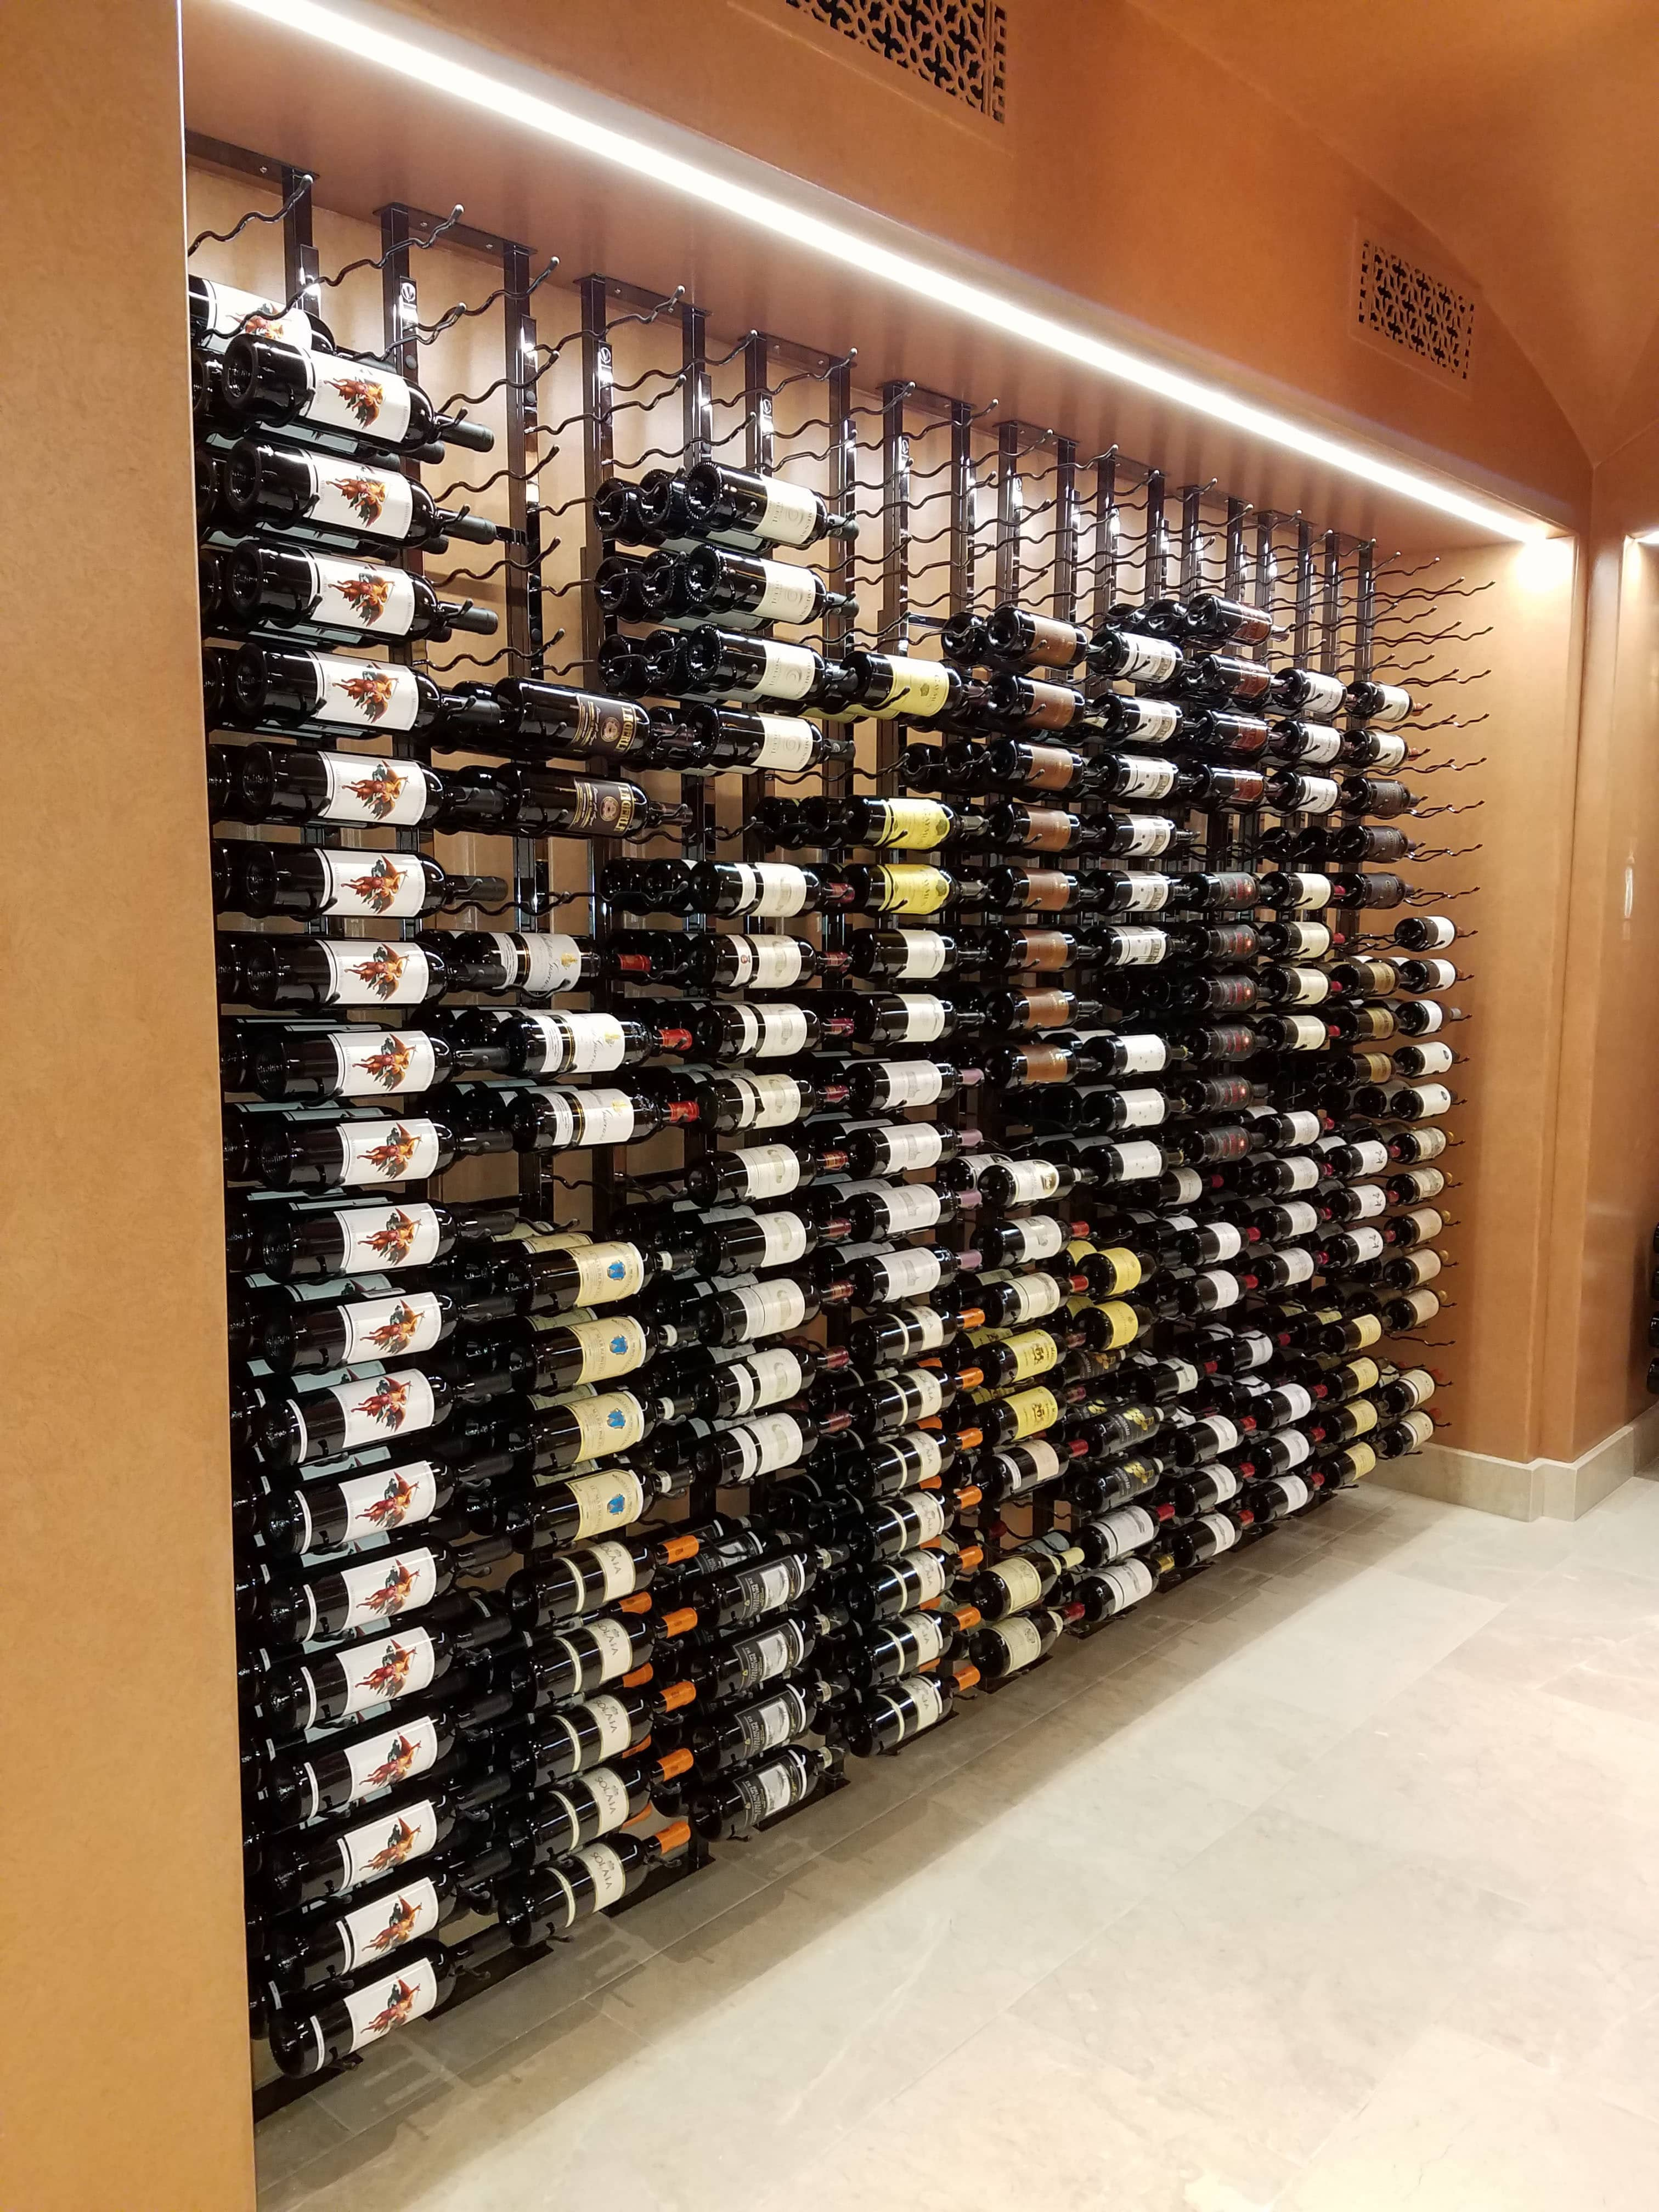 Metal Wine Racks A Stunning Floor To Ceiling Metal Wine Rack Display In Irvine